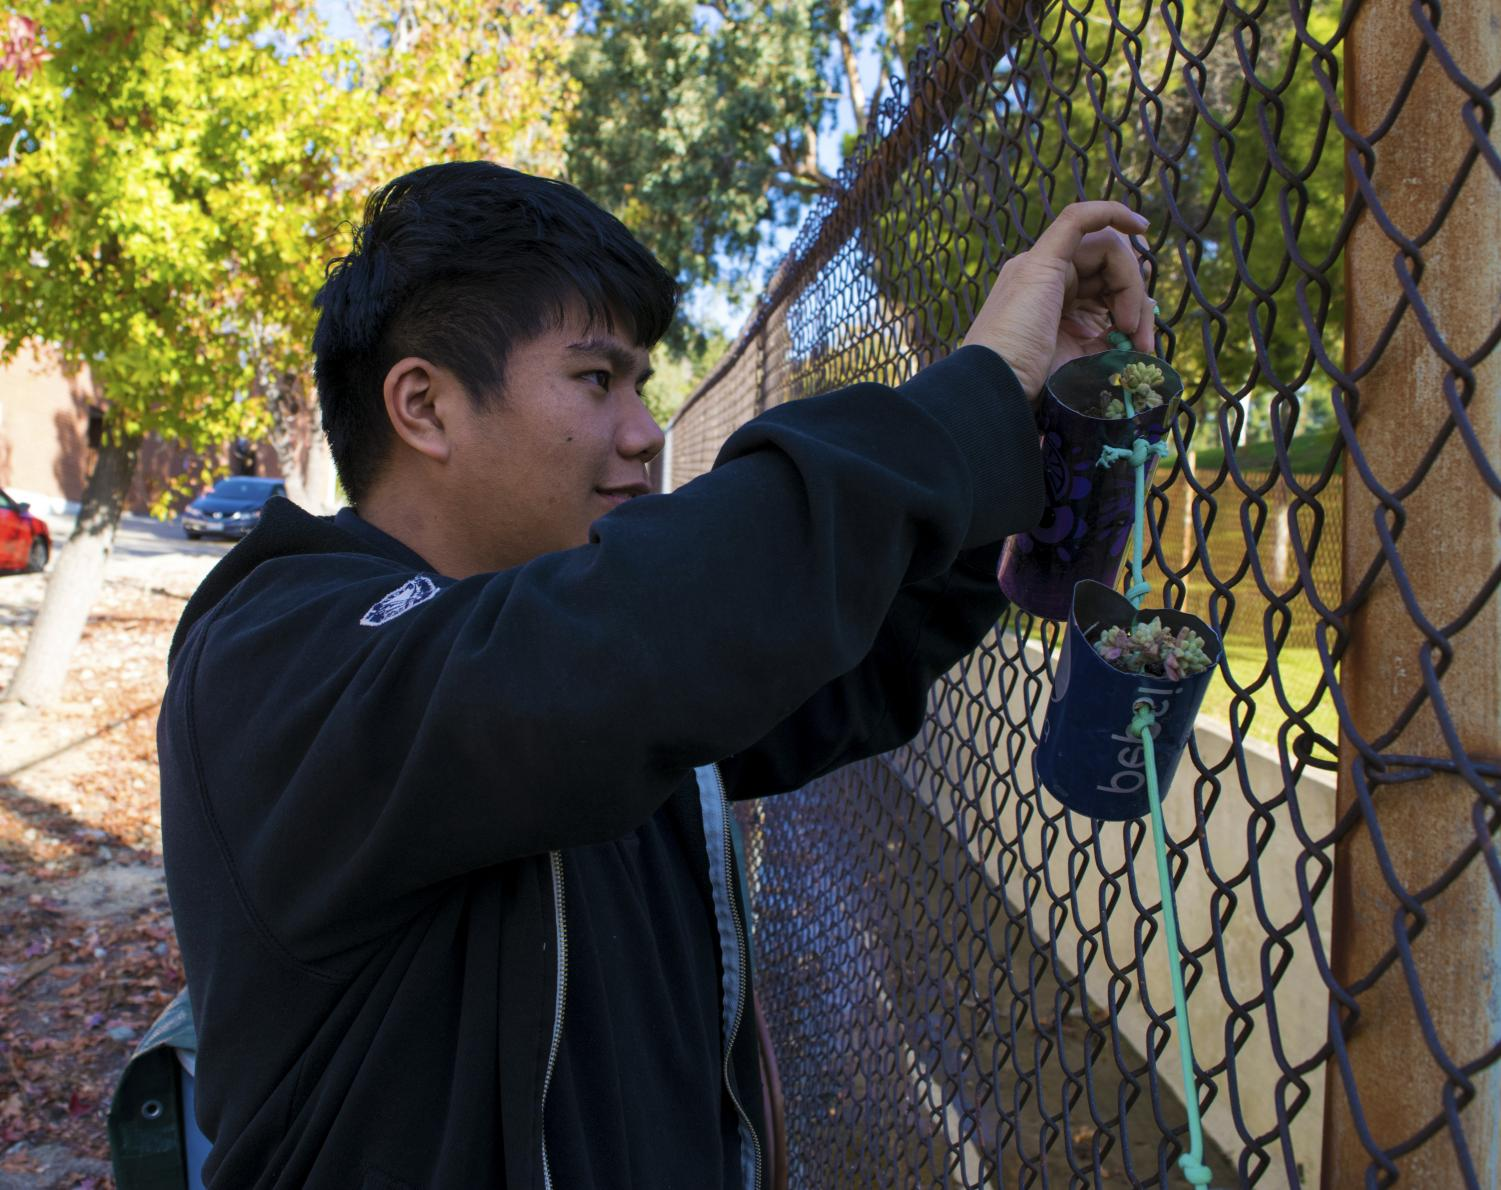 A Green Club member tying a plant to the fence.